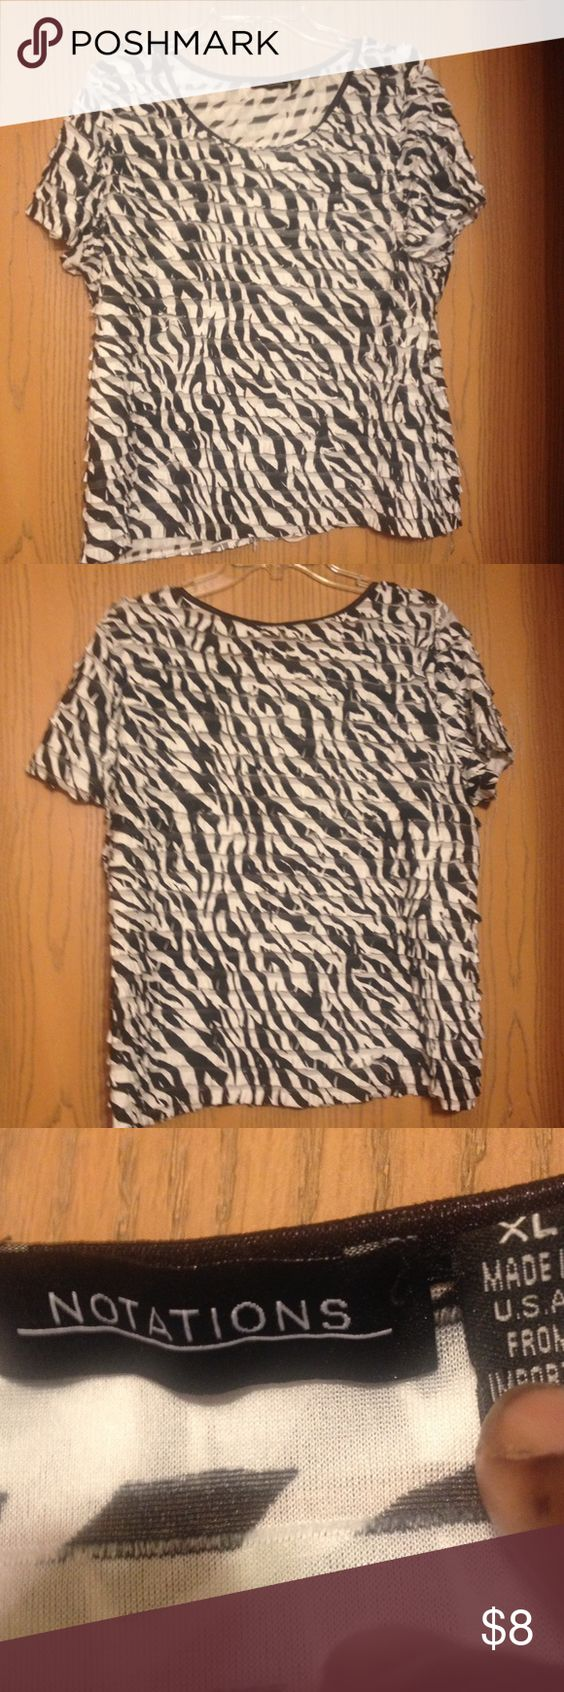 Notations Top Black & white ruffled top. In good condition. Notations Tops